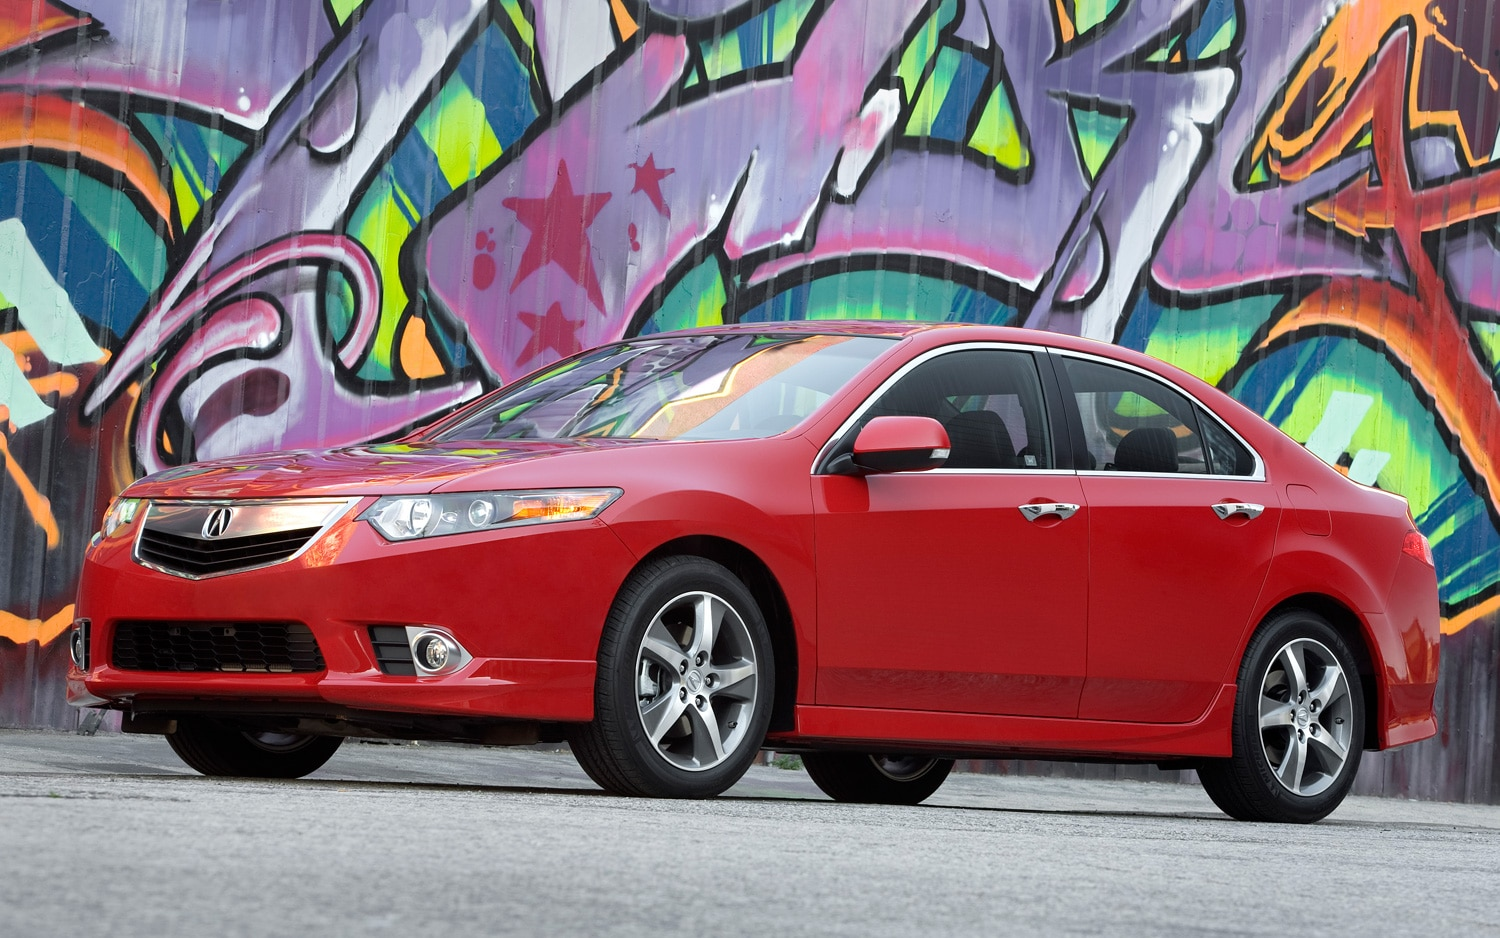 2012 Acura TSX Special Edition Front Three Quarters View1